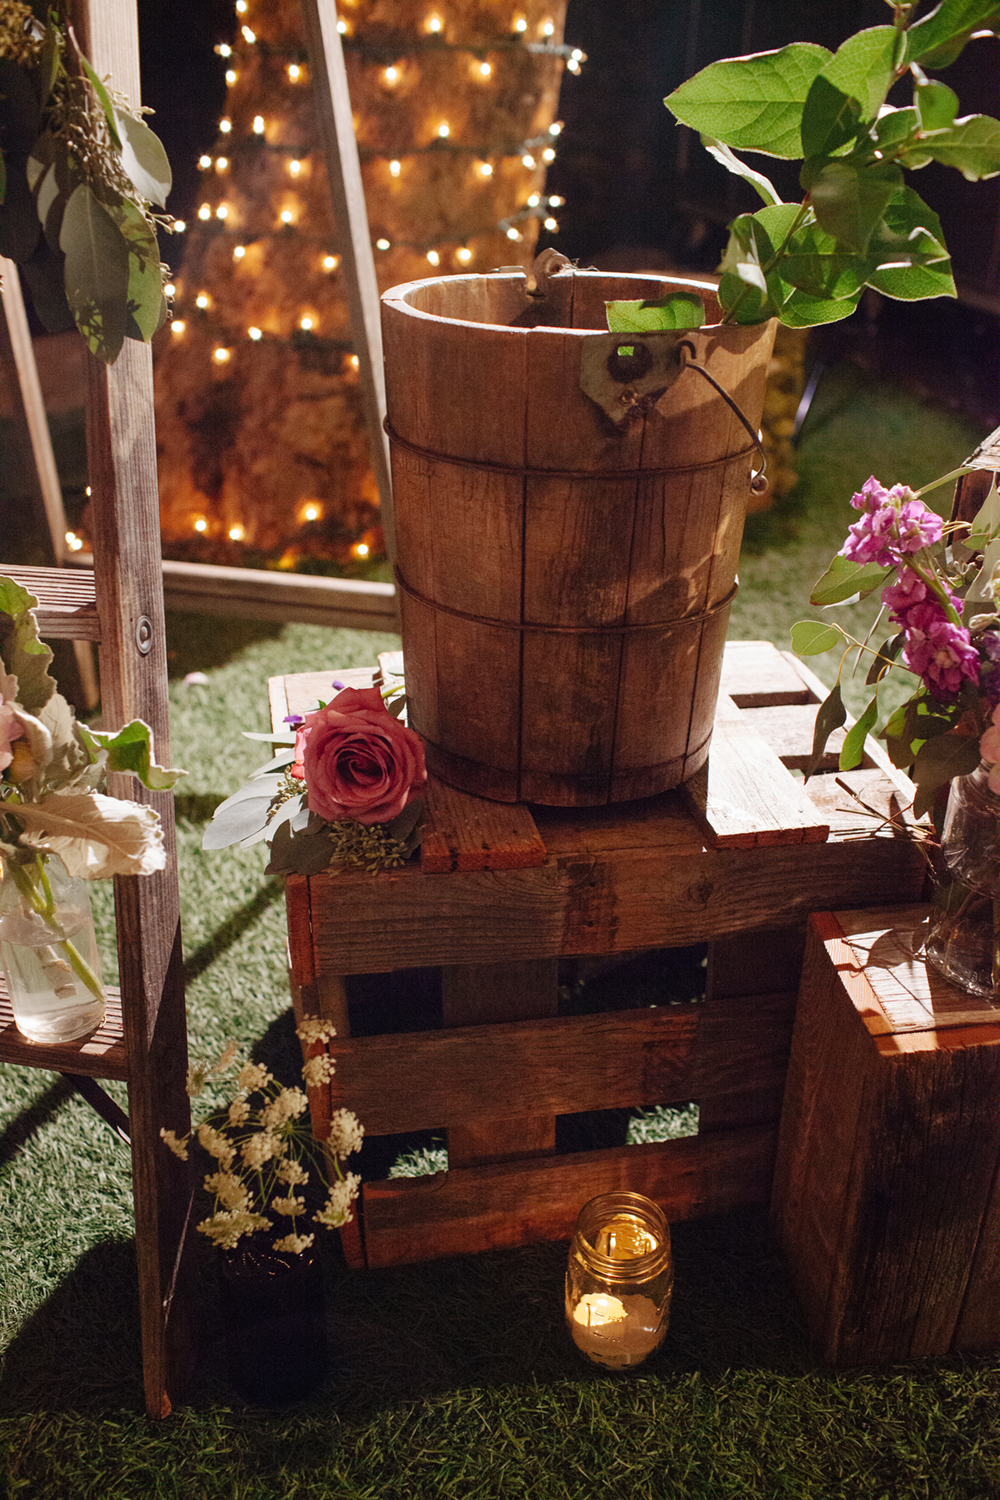 Saratoga-Springs-Outdoor-Rustic-Wedding-Details-22.JPG